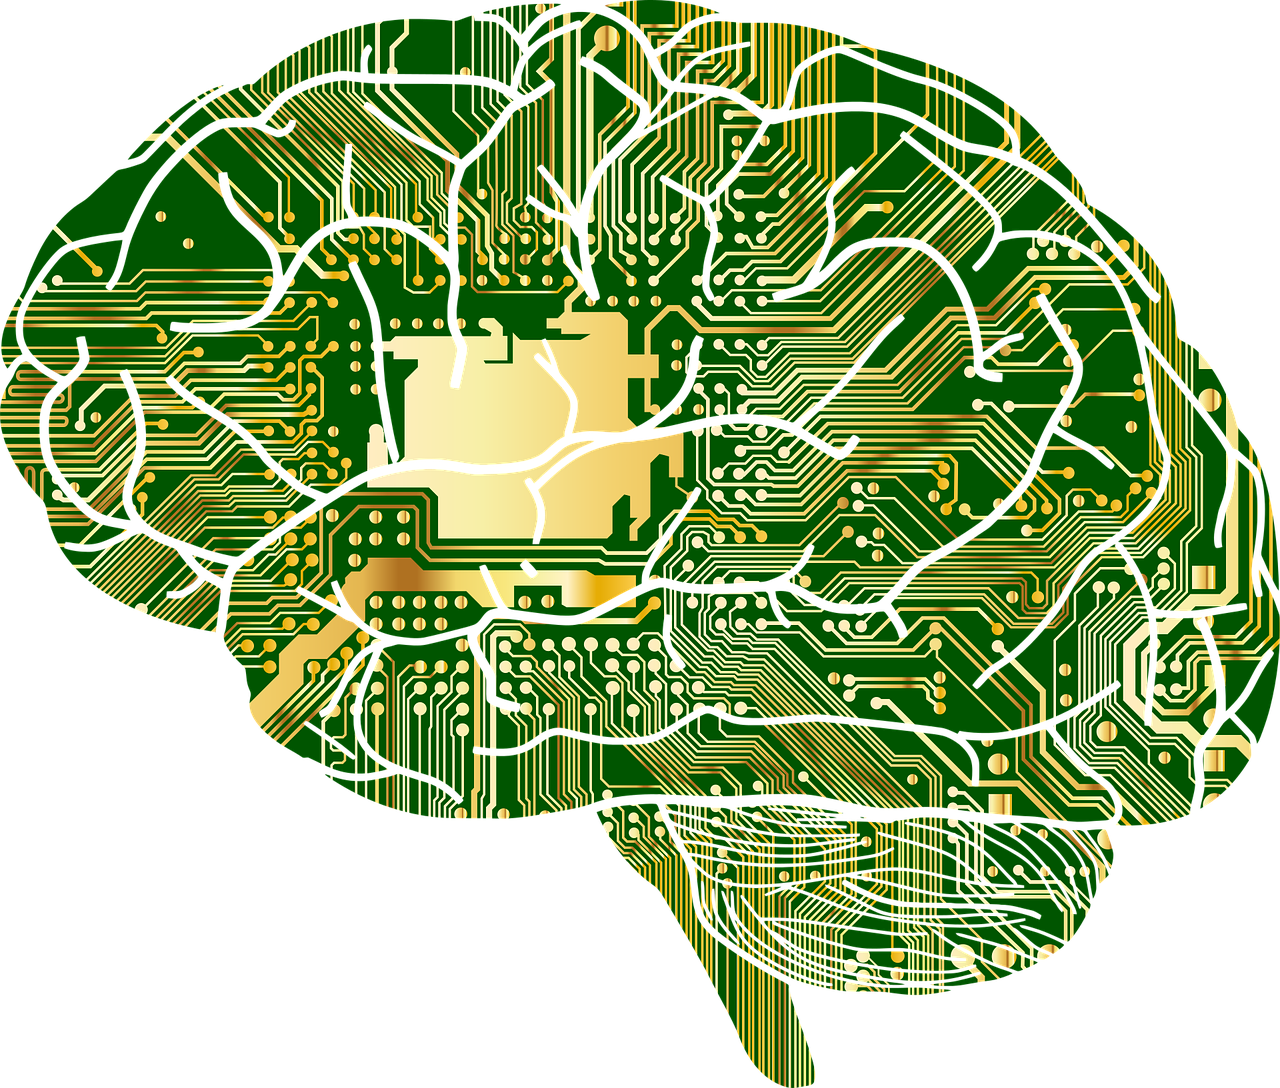 A Neurophilosophy of Two Technological Game-Changers: Synthetic Biology & Superintelligence